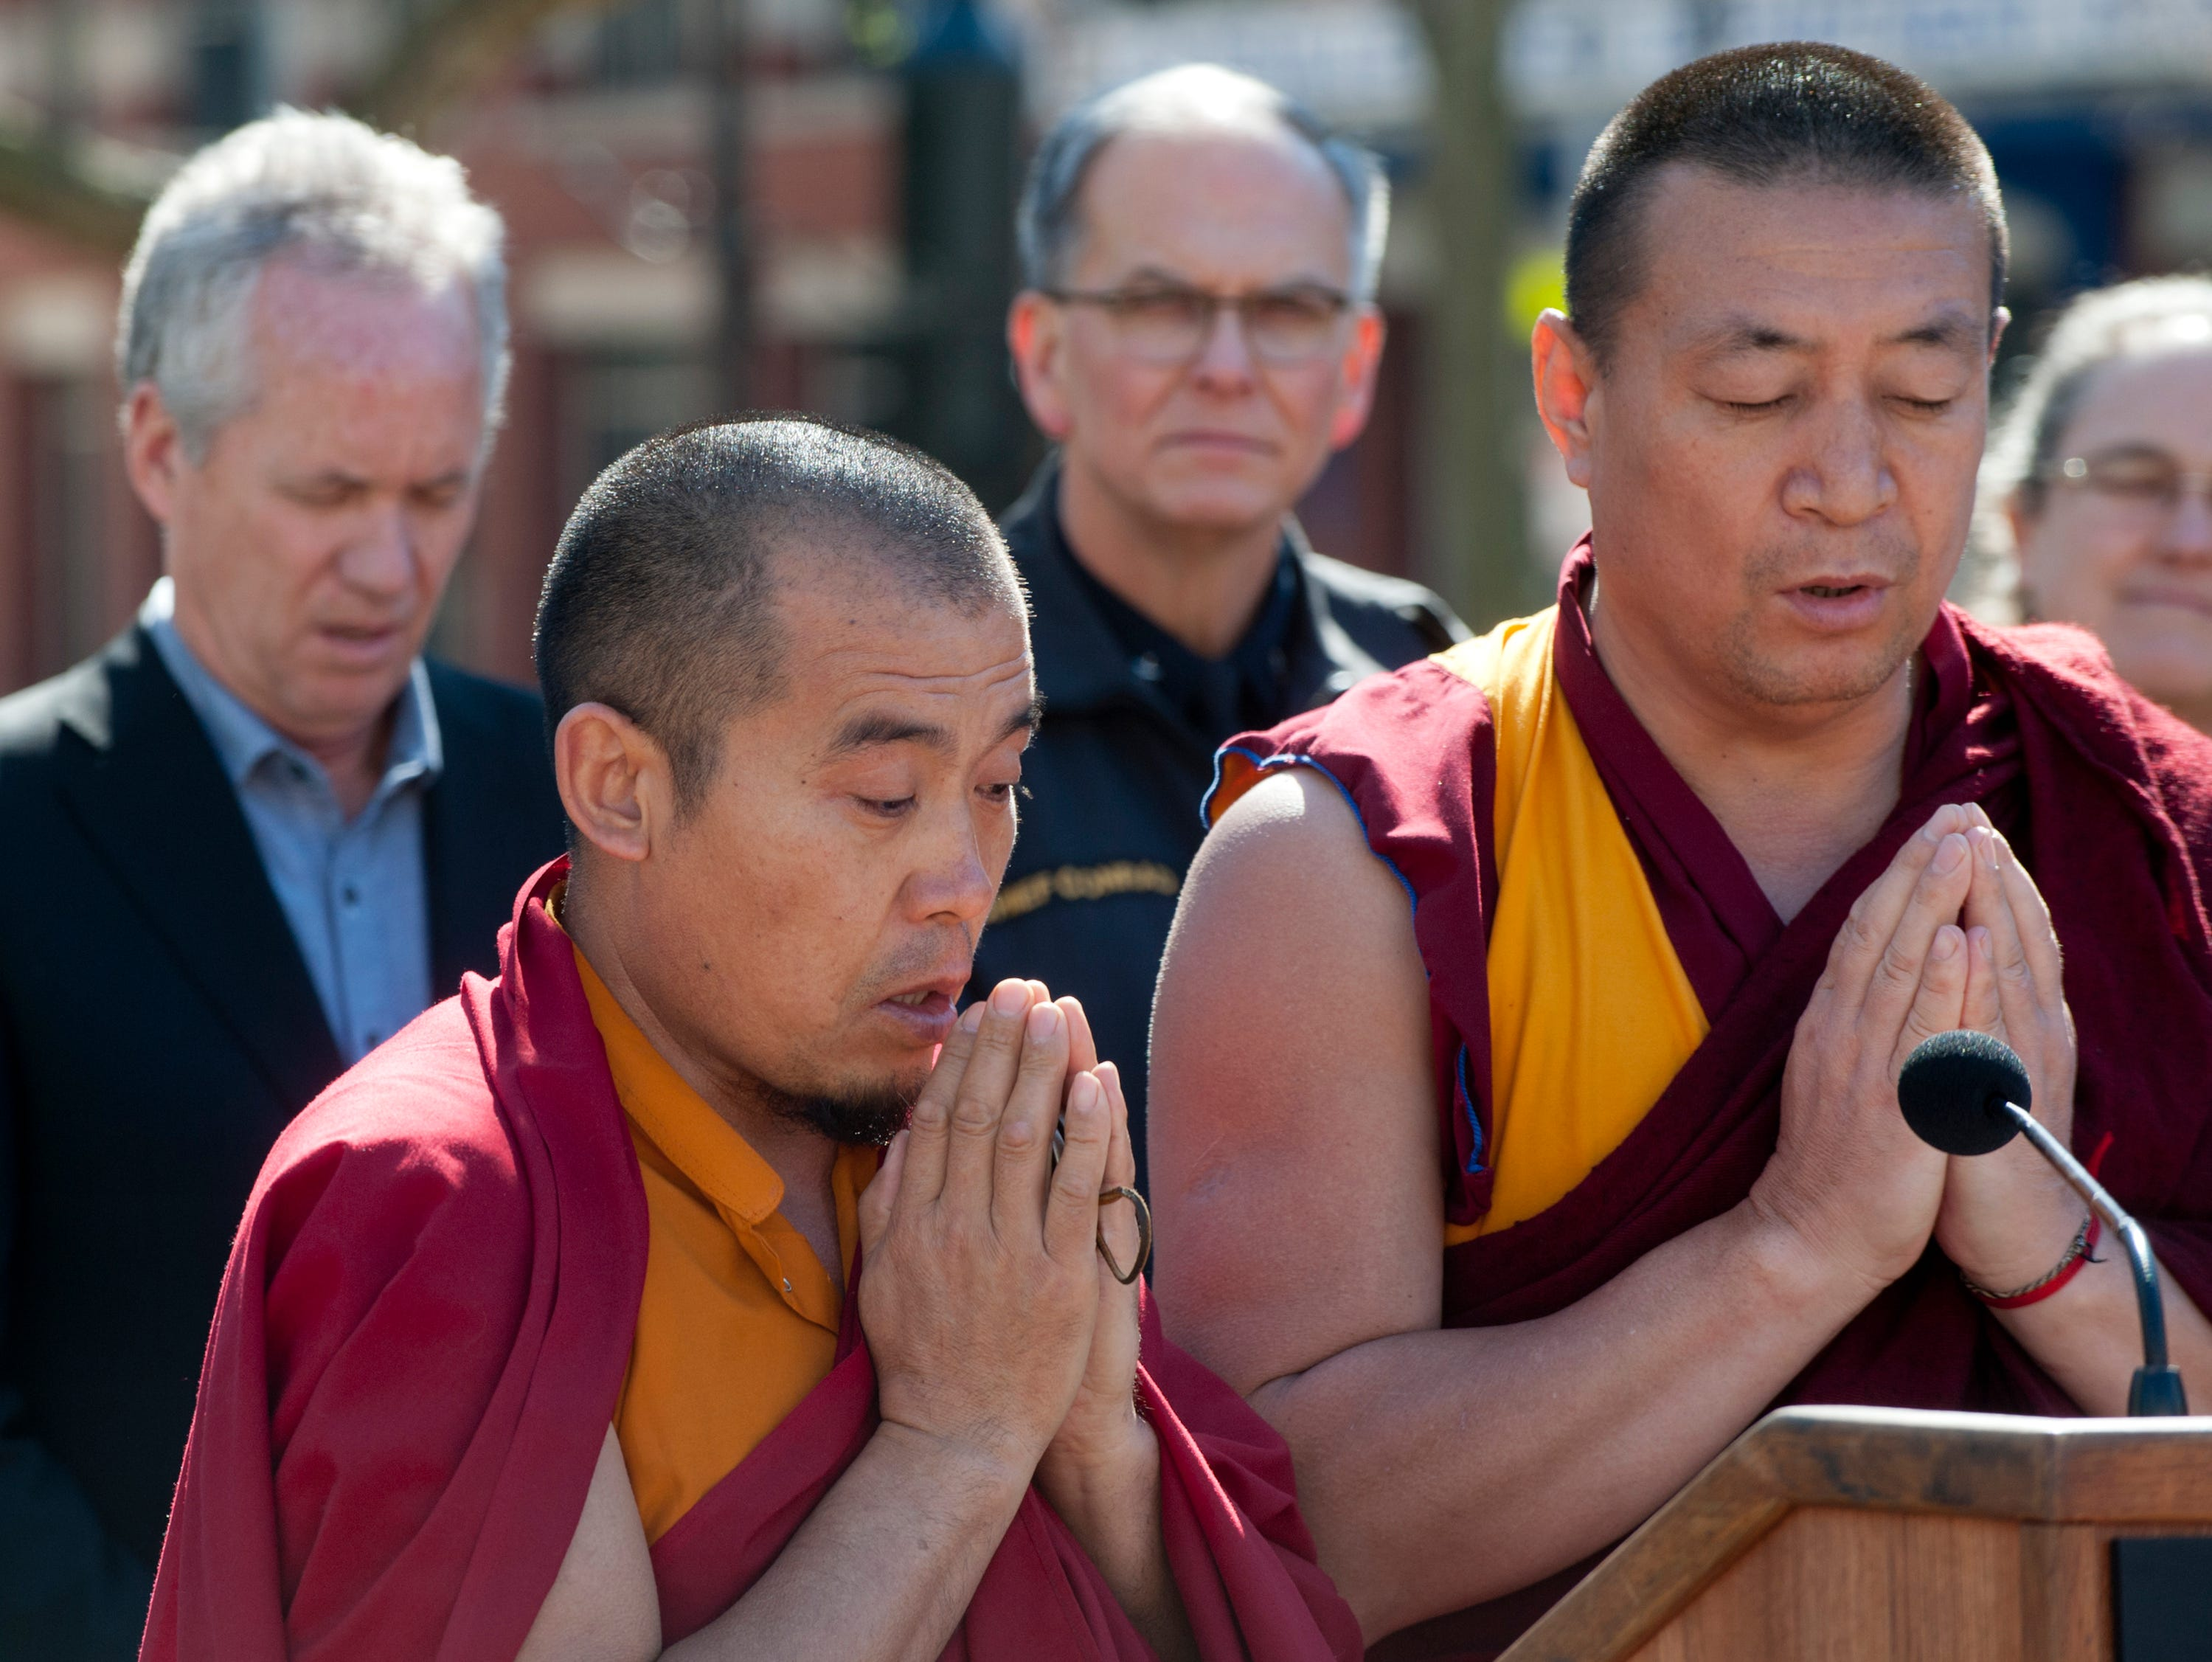 Geshe Sonam, left, and Geshe Gedun, Tibetan Budhist members of the Drepung Gomang Center for Engaging Compassion in St. Matthews, chant a prayer at the vigil.